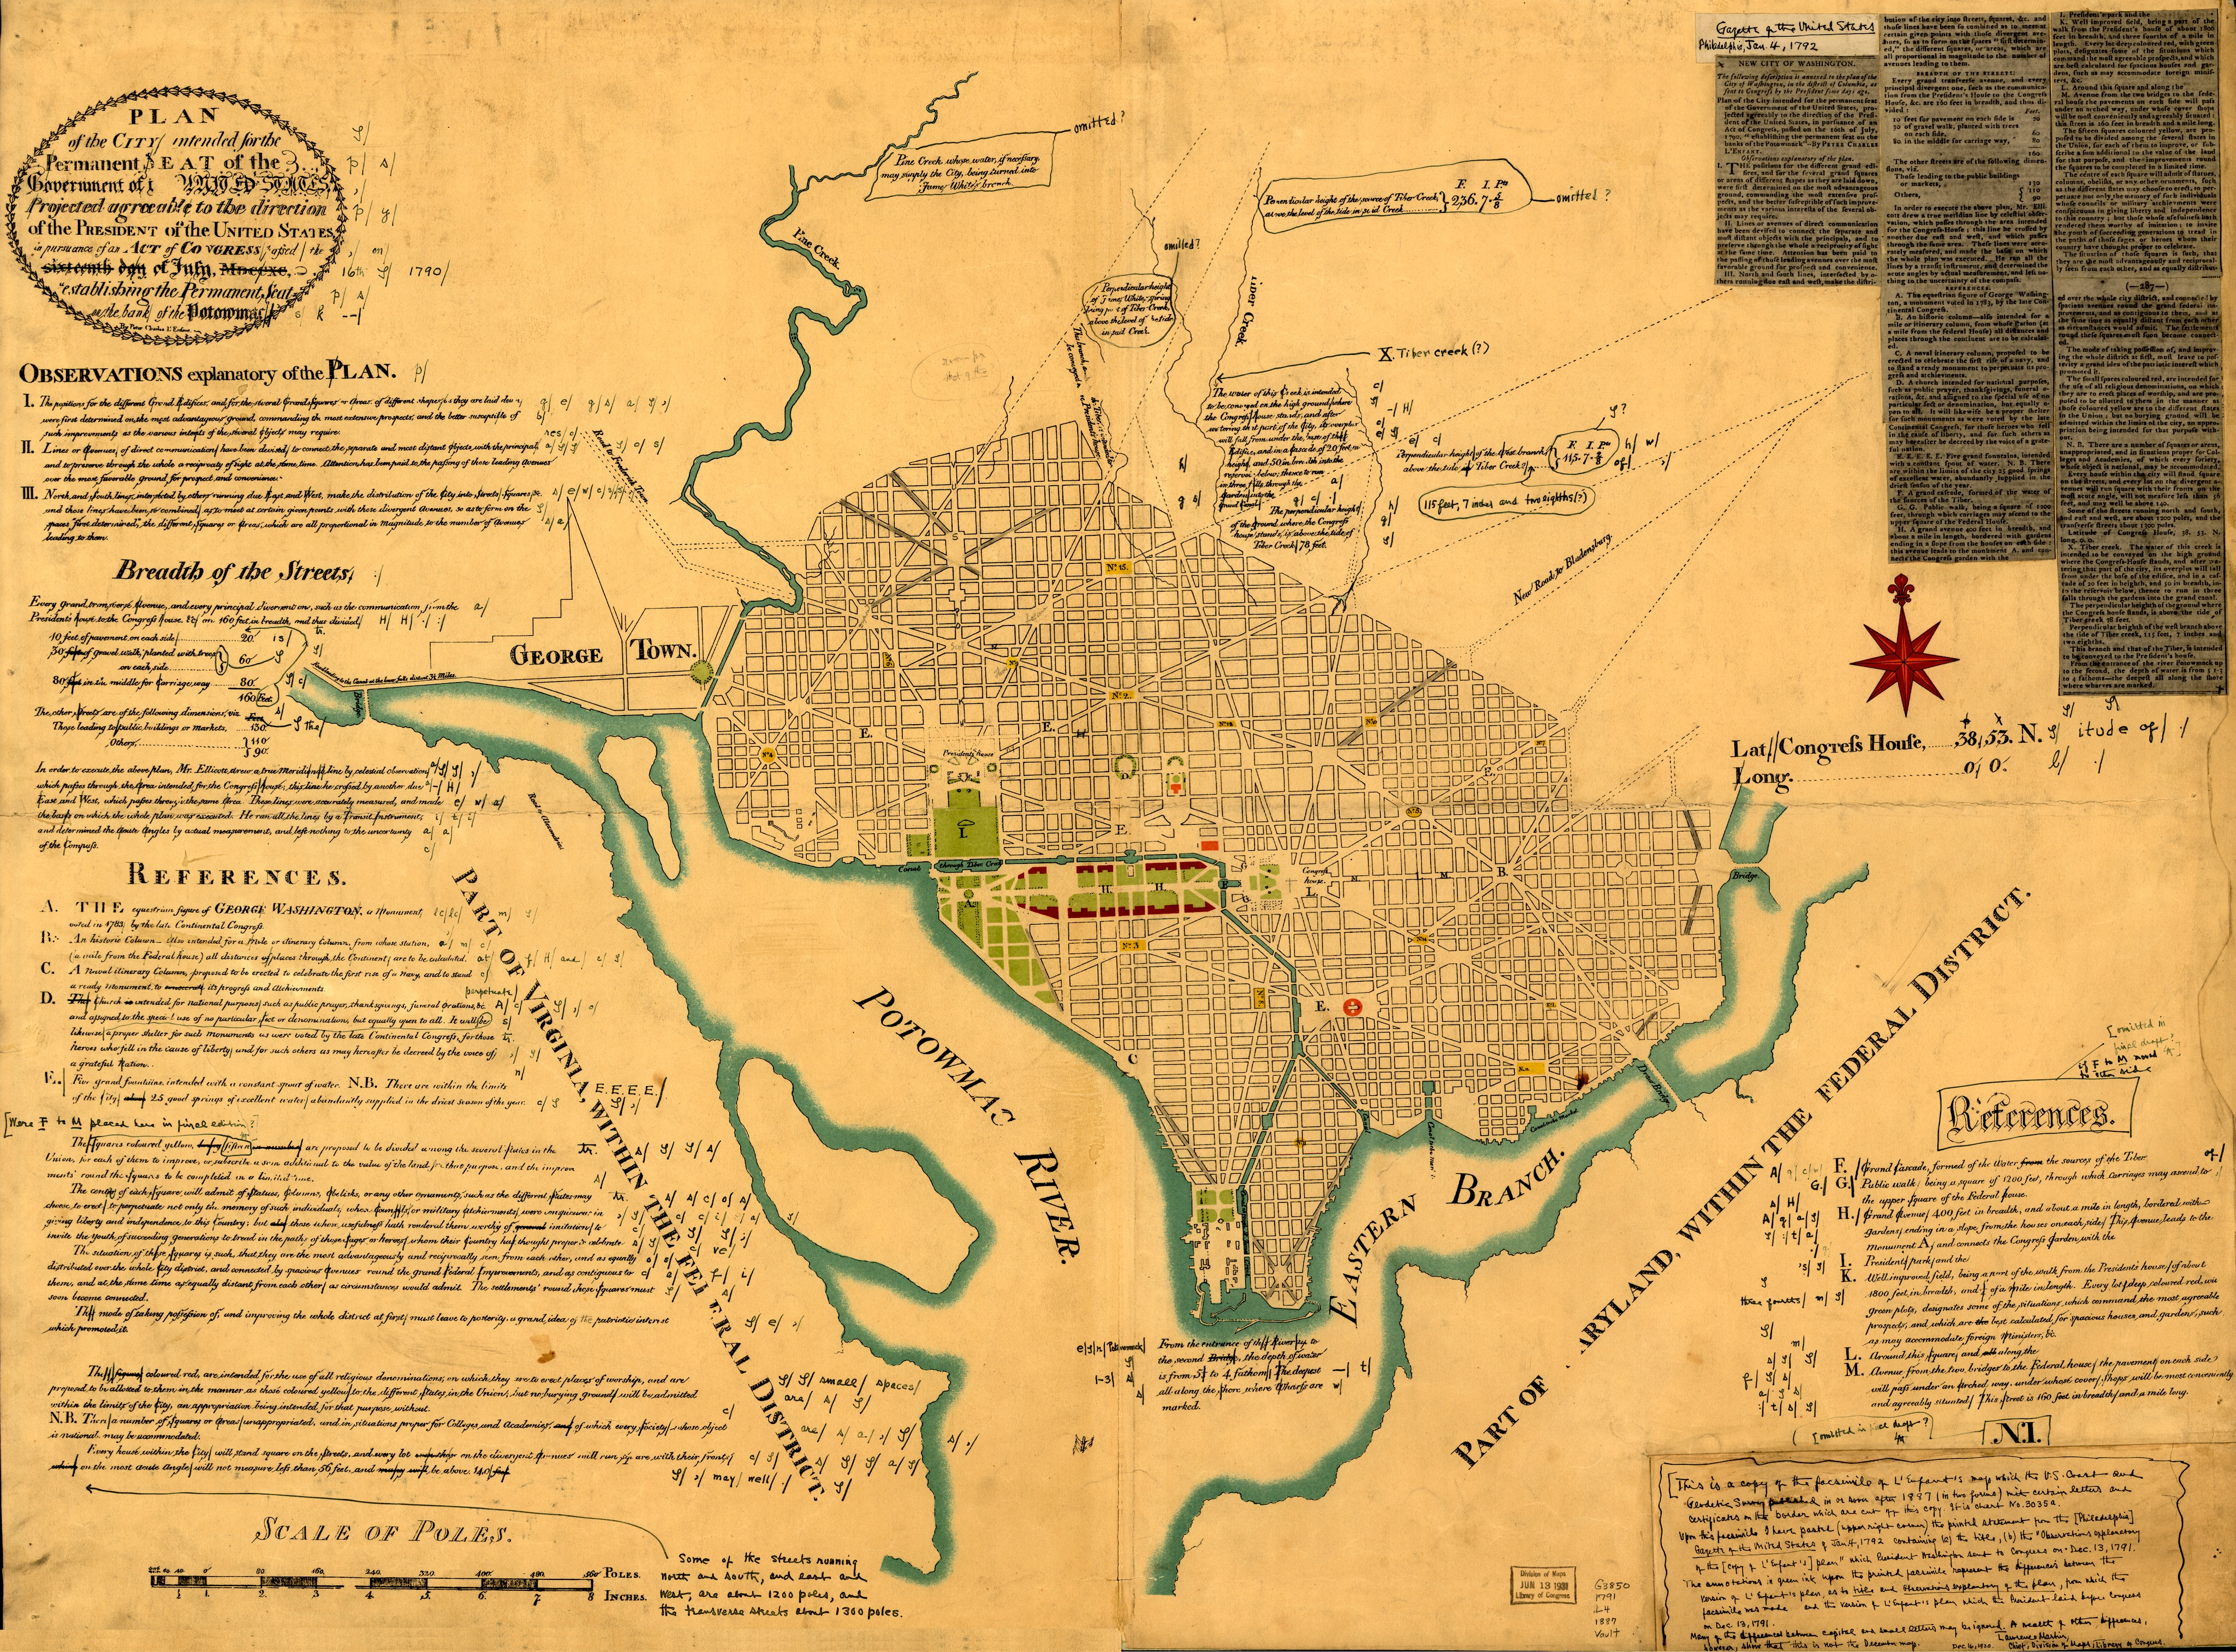 Early plan of the City of Washington with details on the Congressional approval of July 16, 1790, and debates in January 1792.